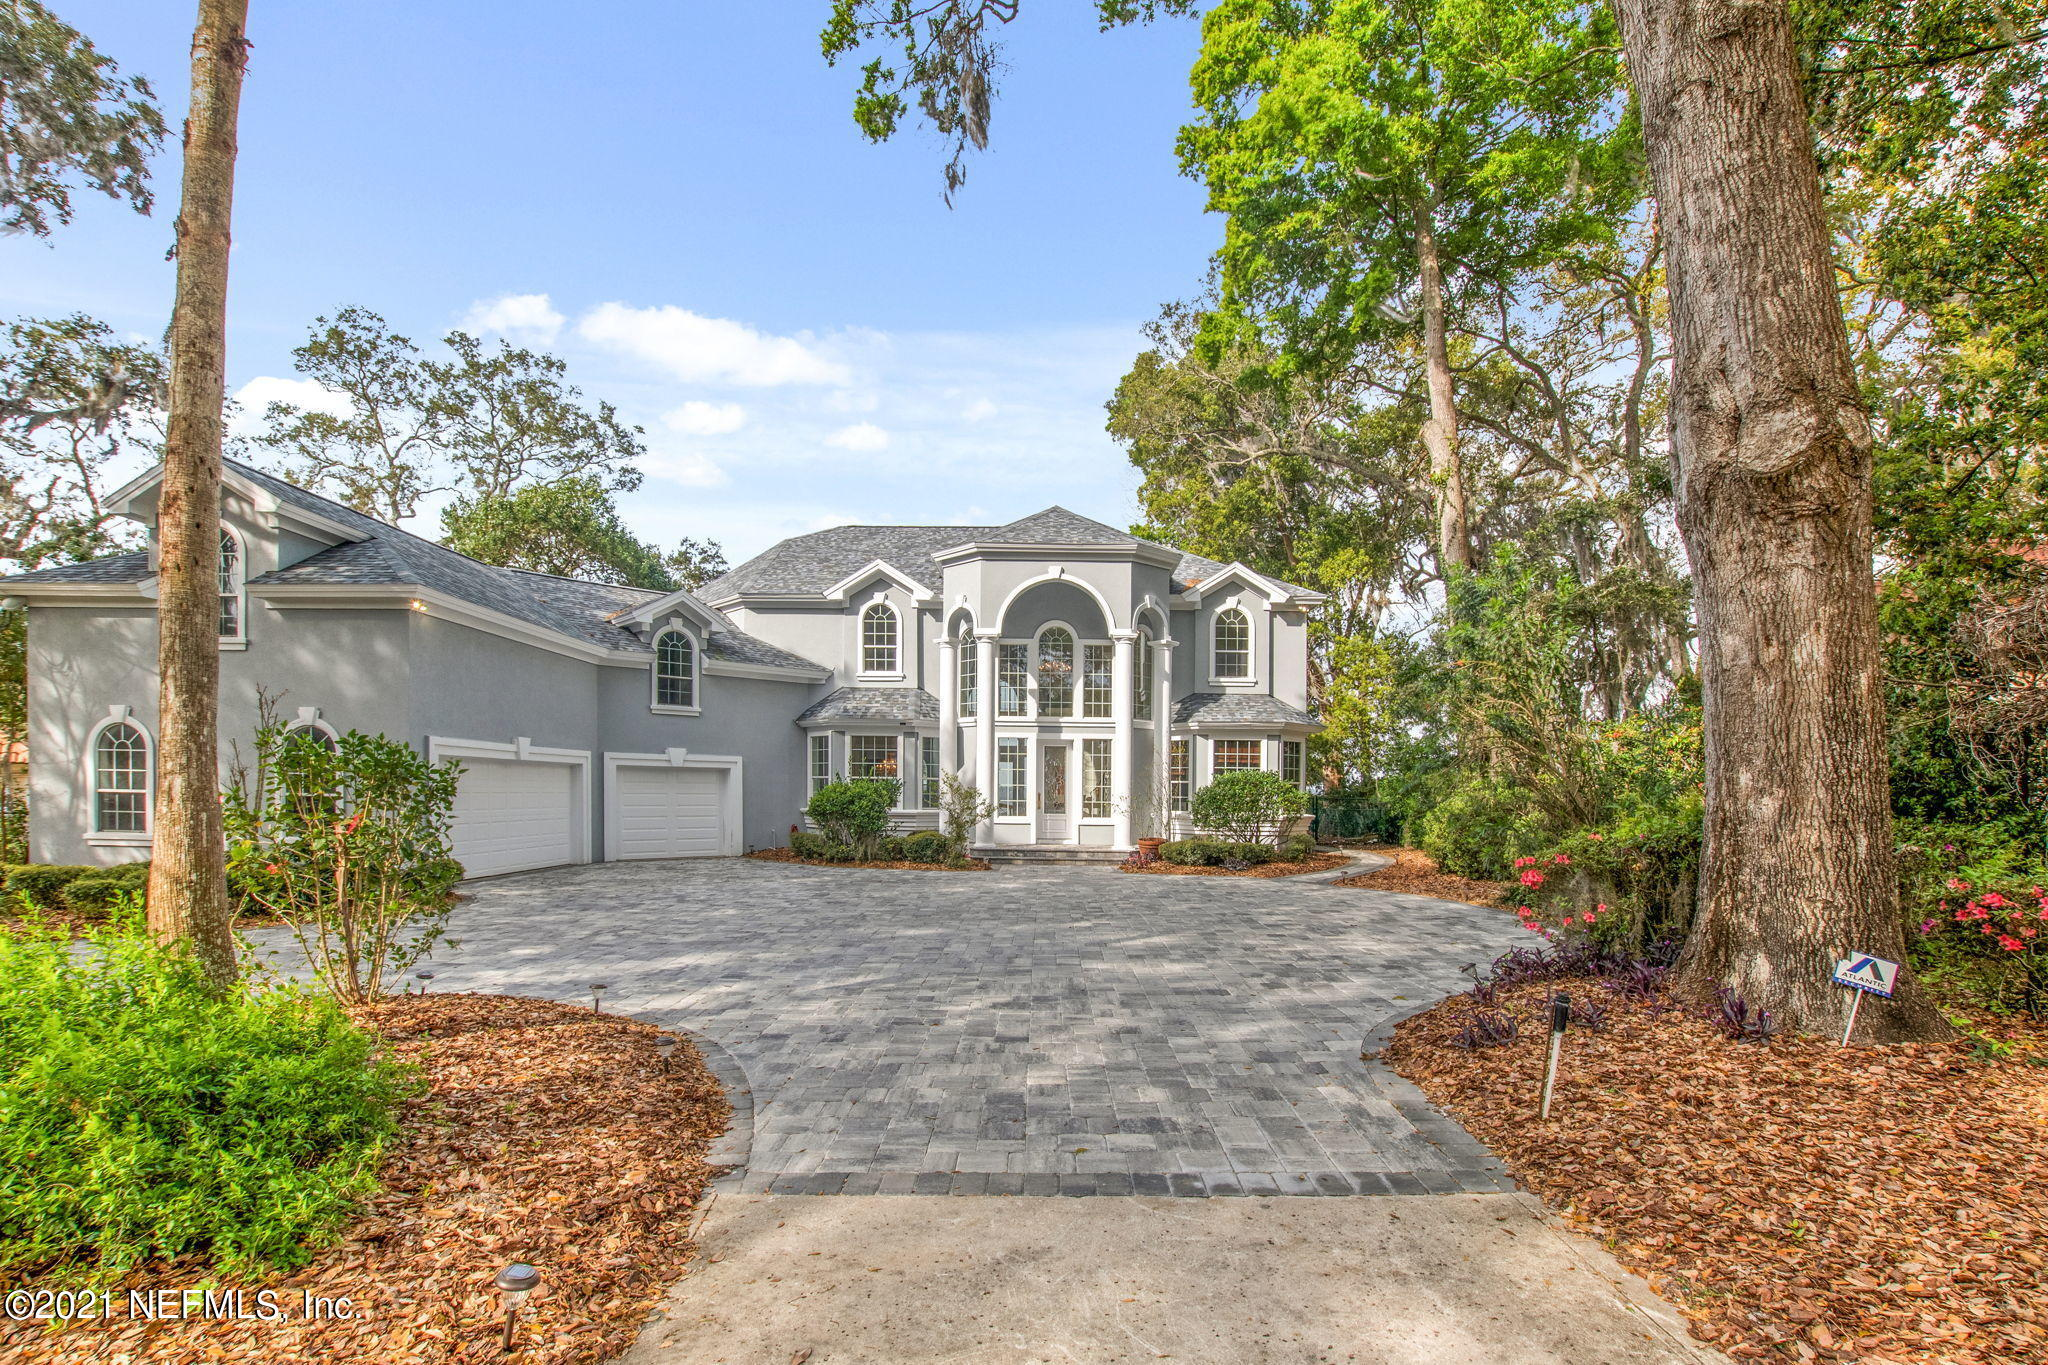 This Beautiful home  on the St. Johns River captures the breathtaking views of the evening sunsets ,from every room in this home.  Located in one of the areas that boasts of a HIGH bluff! The house sits on almost an acre of land, has a very desirable open floorplan, including a big game/bonus room above the garage. Recently updated kitchen and bath, replaced 2 A/C units, windows and French doors. Fresh paint, Pavers added, dock redone, Pool resurfaced, The Bulkhead has been extended. A feature that has been grandfathered in!  This home is indeed a waterfront beauty!!! with priceless views of the river !!Appraisal on 12/8/2020 was at $2,500,000.00.